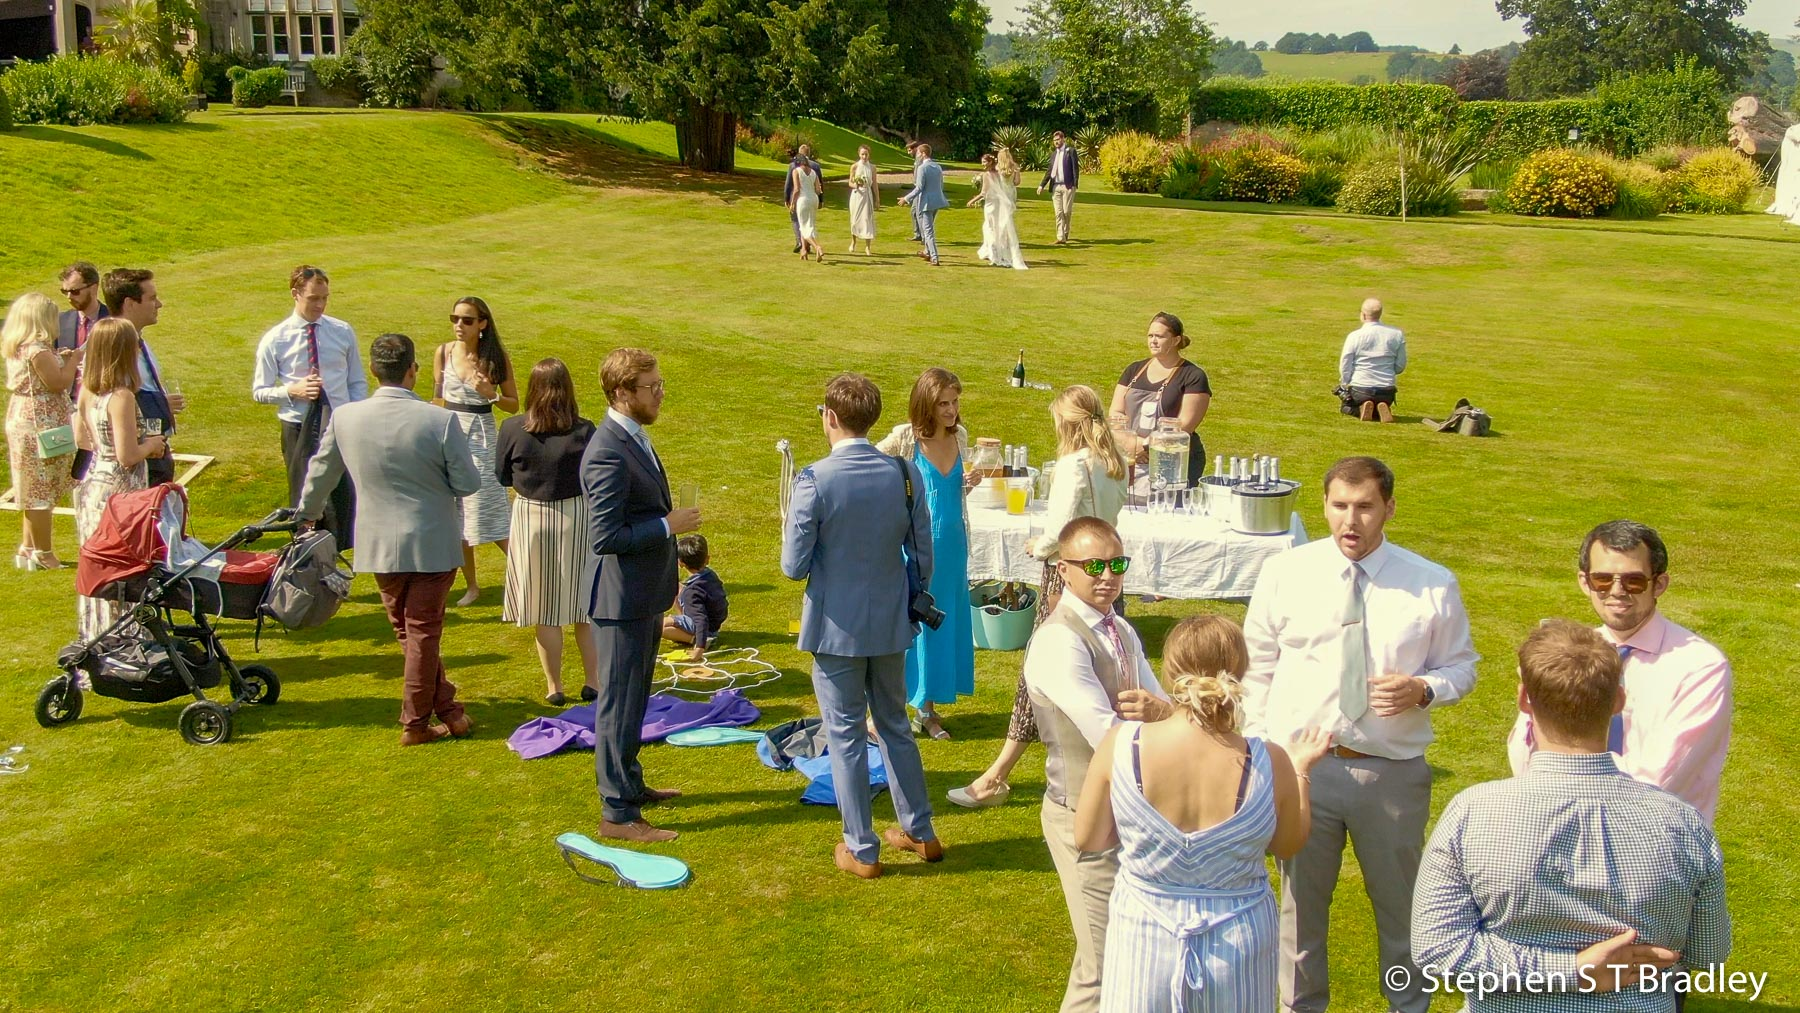 Aerial video of country house wedding at Birdsgrove, Derbyshire, UK, by Stephen S T Bradley - aerial drone photographer and video production services in Dublin and throughout Ireland. Screenshot reference 21